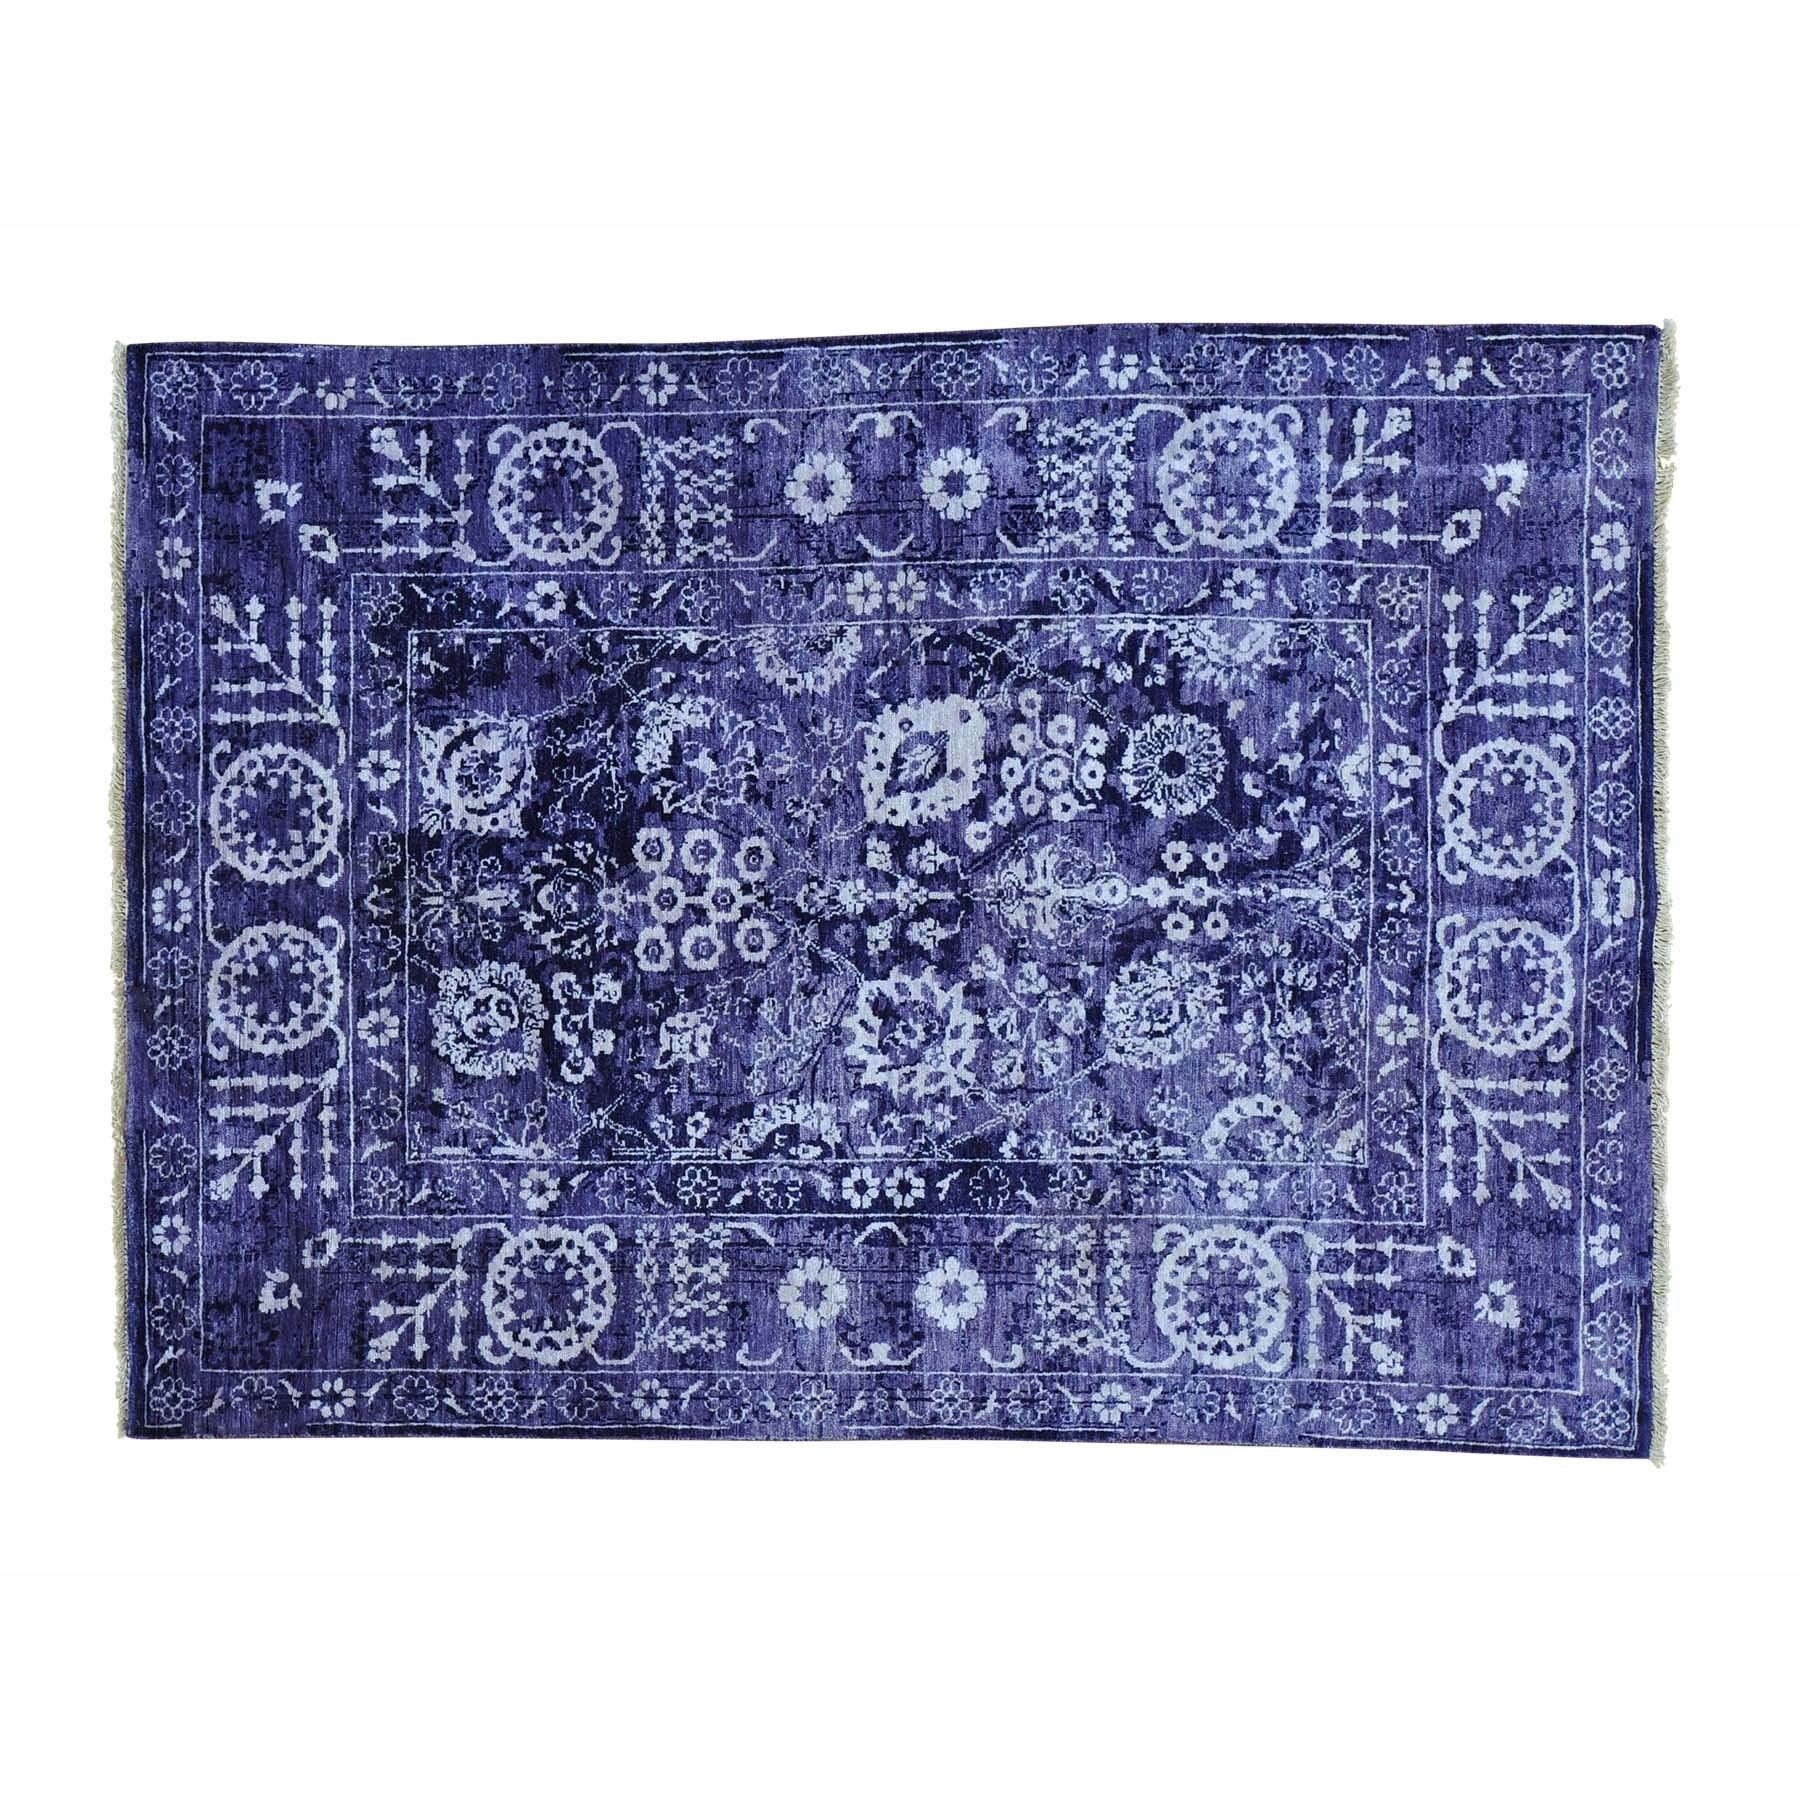 "1800getarug Transitional Tabriz Wool and Viscose From Bamboo Handmade Rug (4'10 x 6'8) (Exact Size: 4'10"" x 6'8""), Purple, Size 5' x 7' (Rayon from Bamboo, Oriental)"